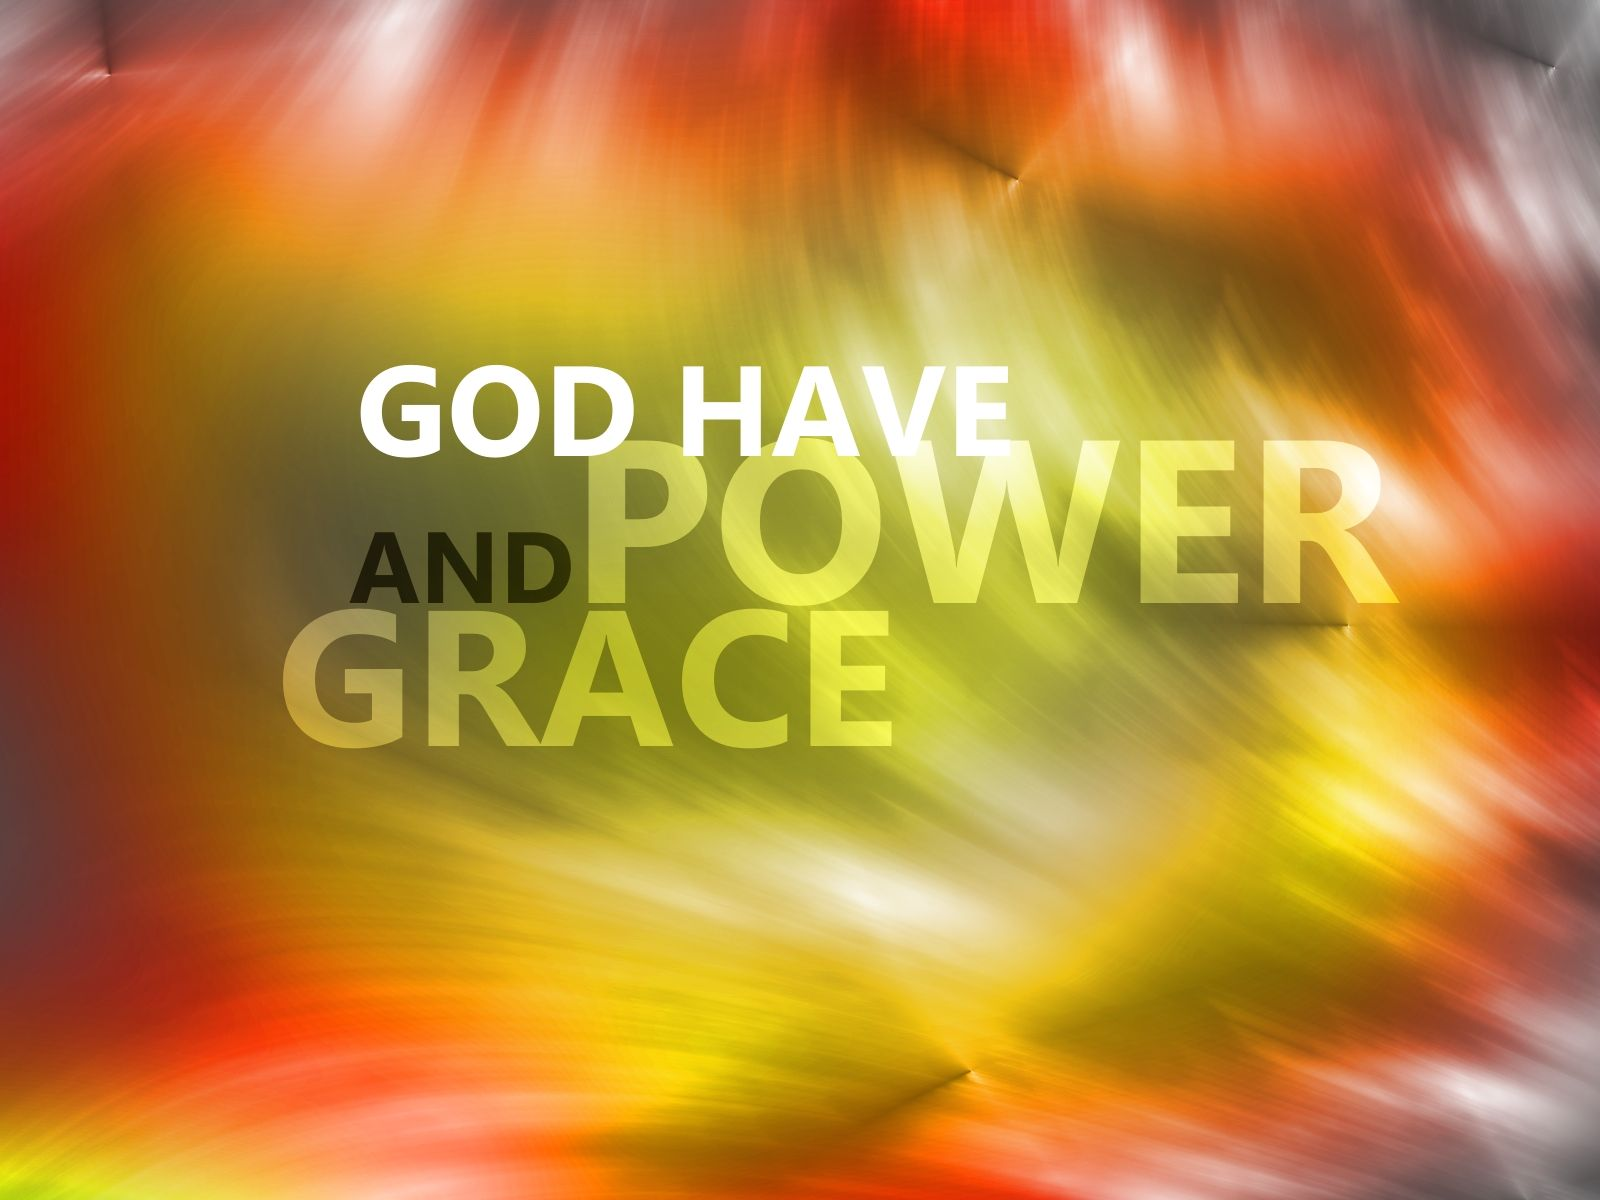 God have power and grace Wallpaper   Christian Wallpapers and 1600x1200